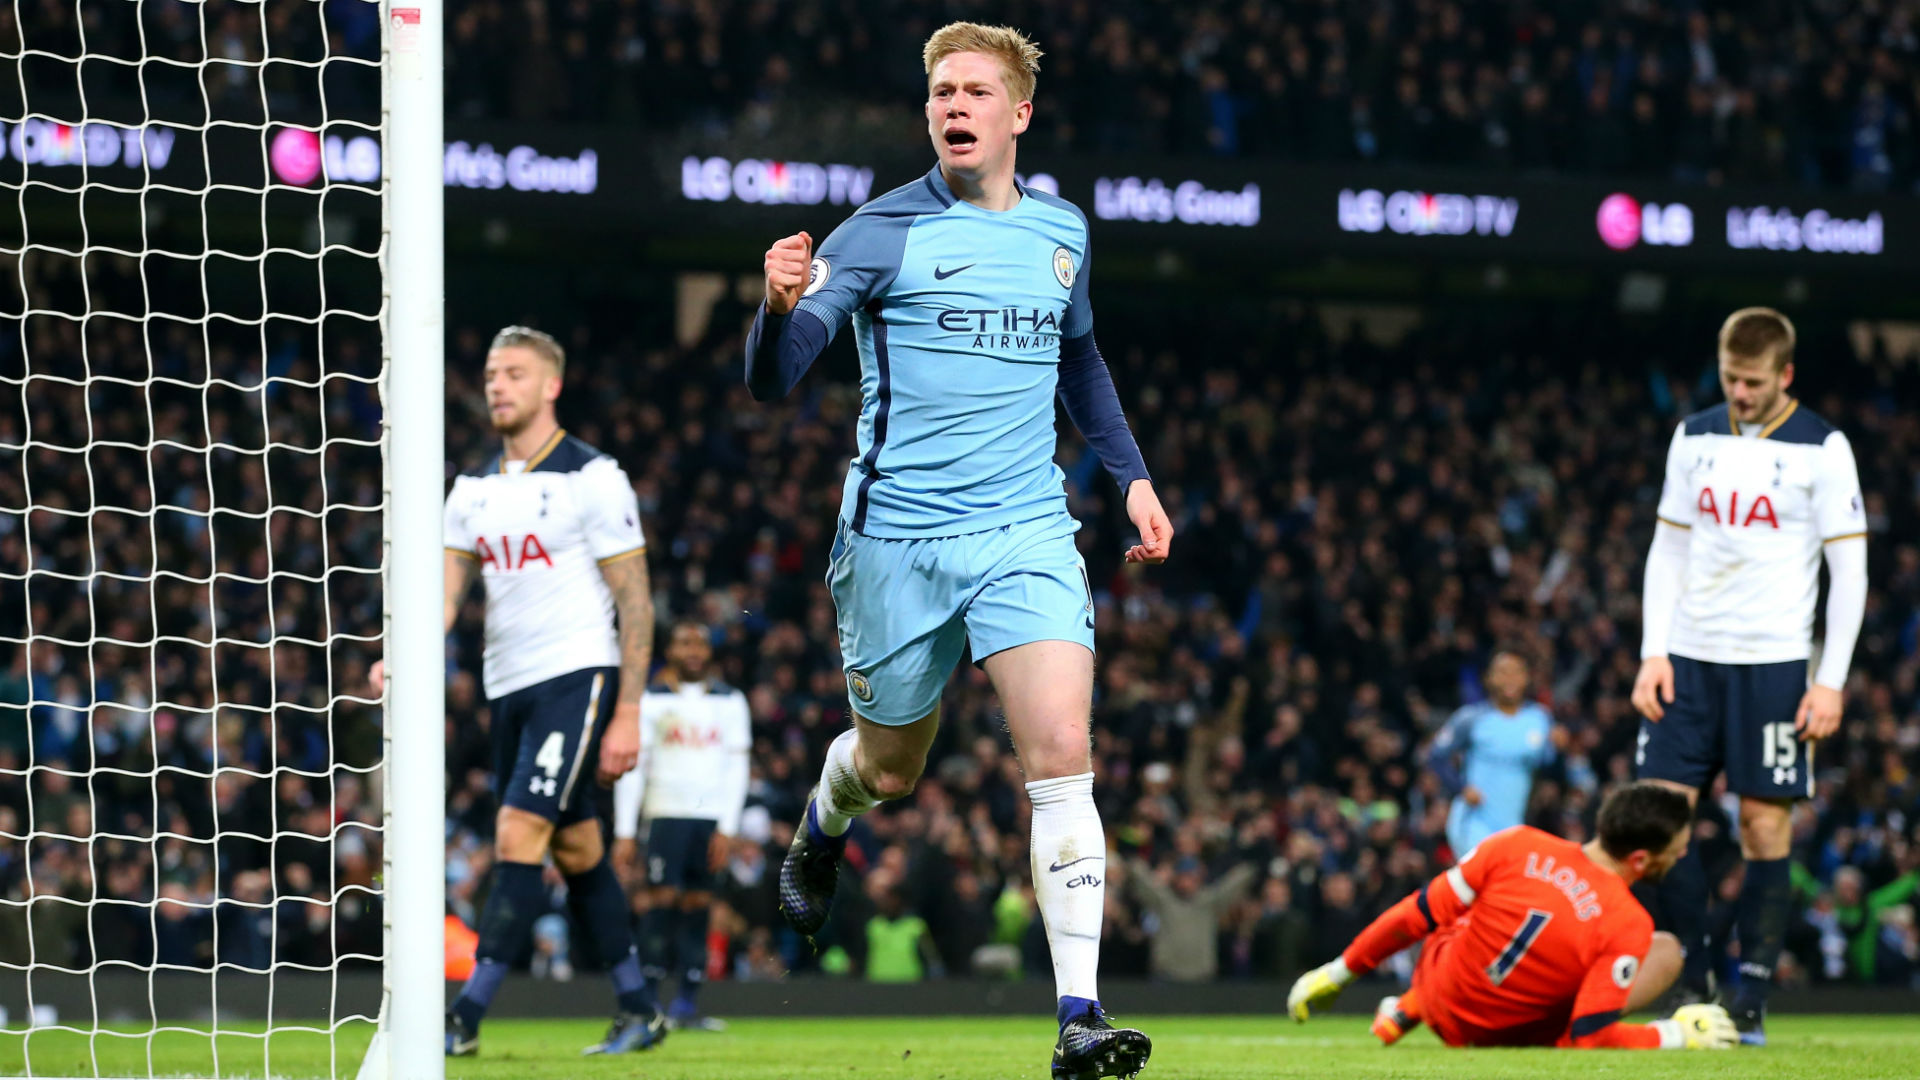 Tottenham-Man City, Premier League Prediction | Betinum com